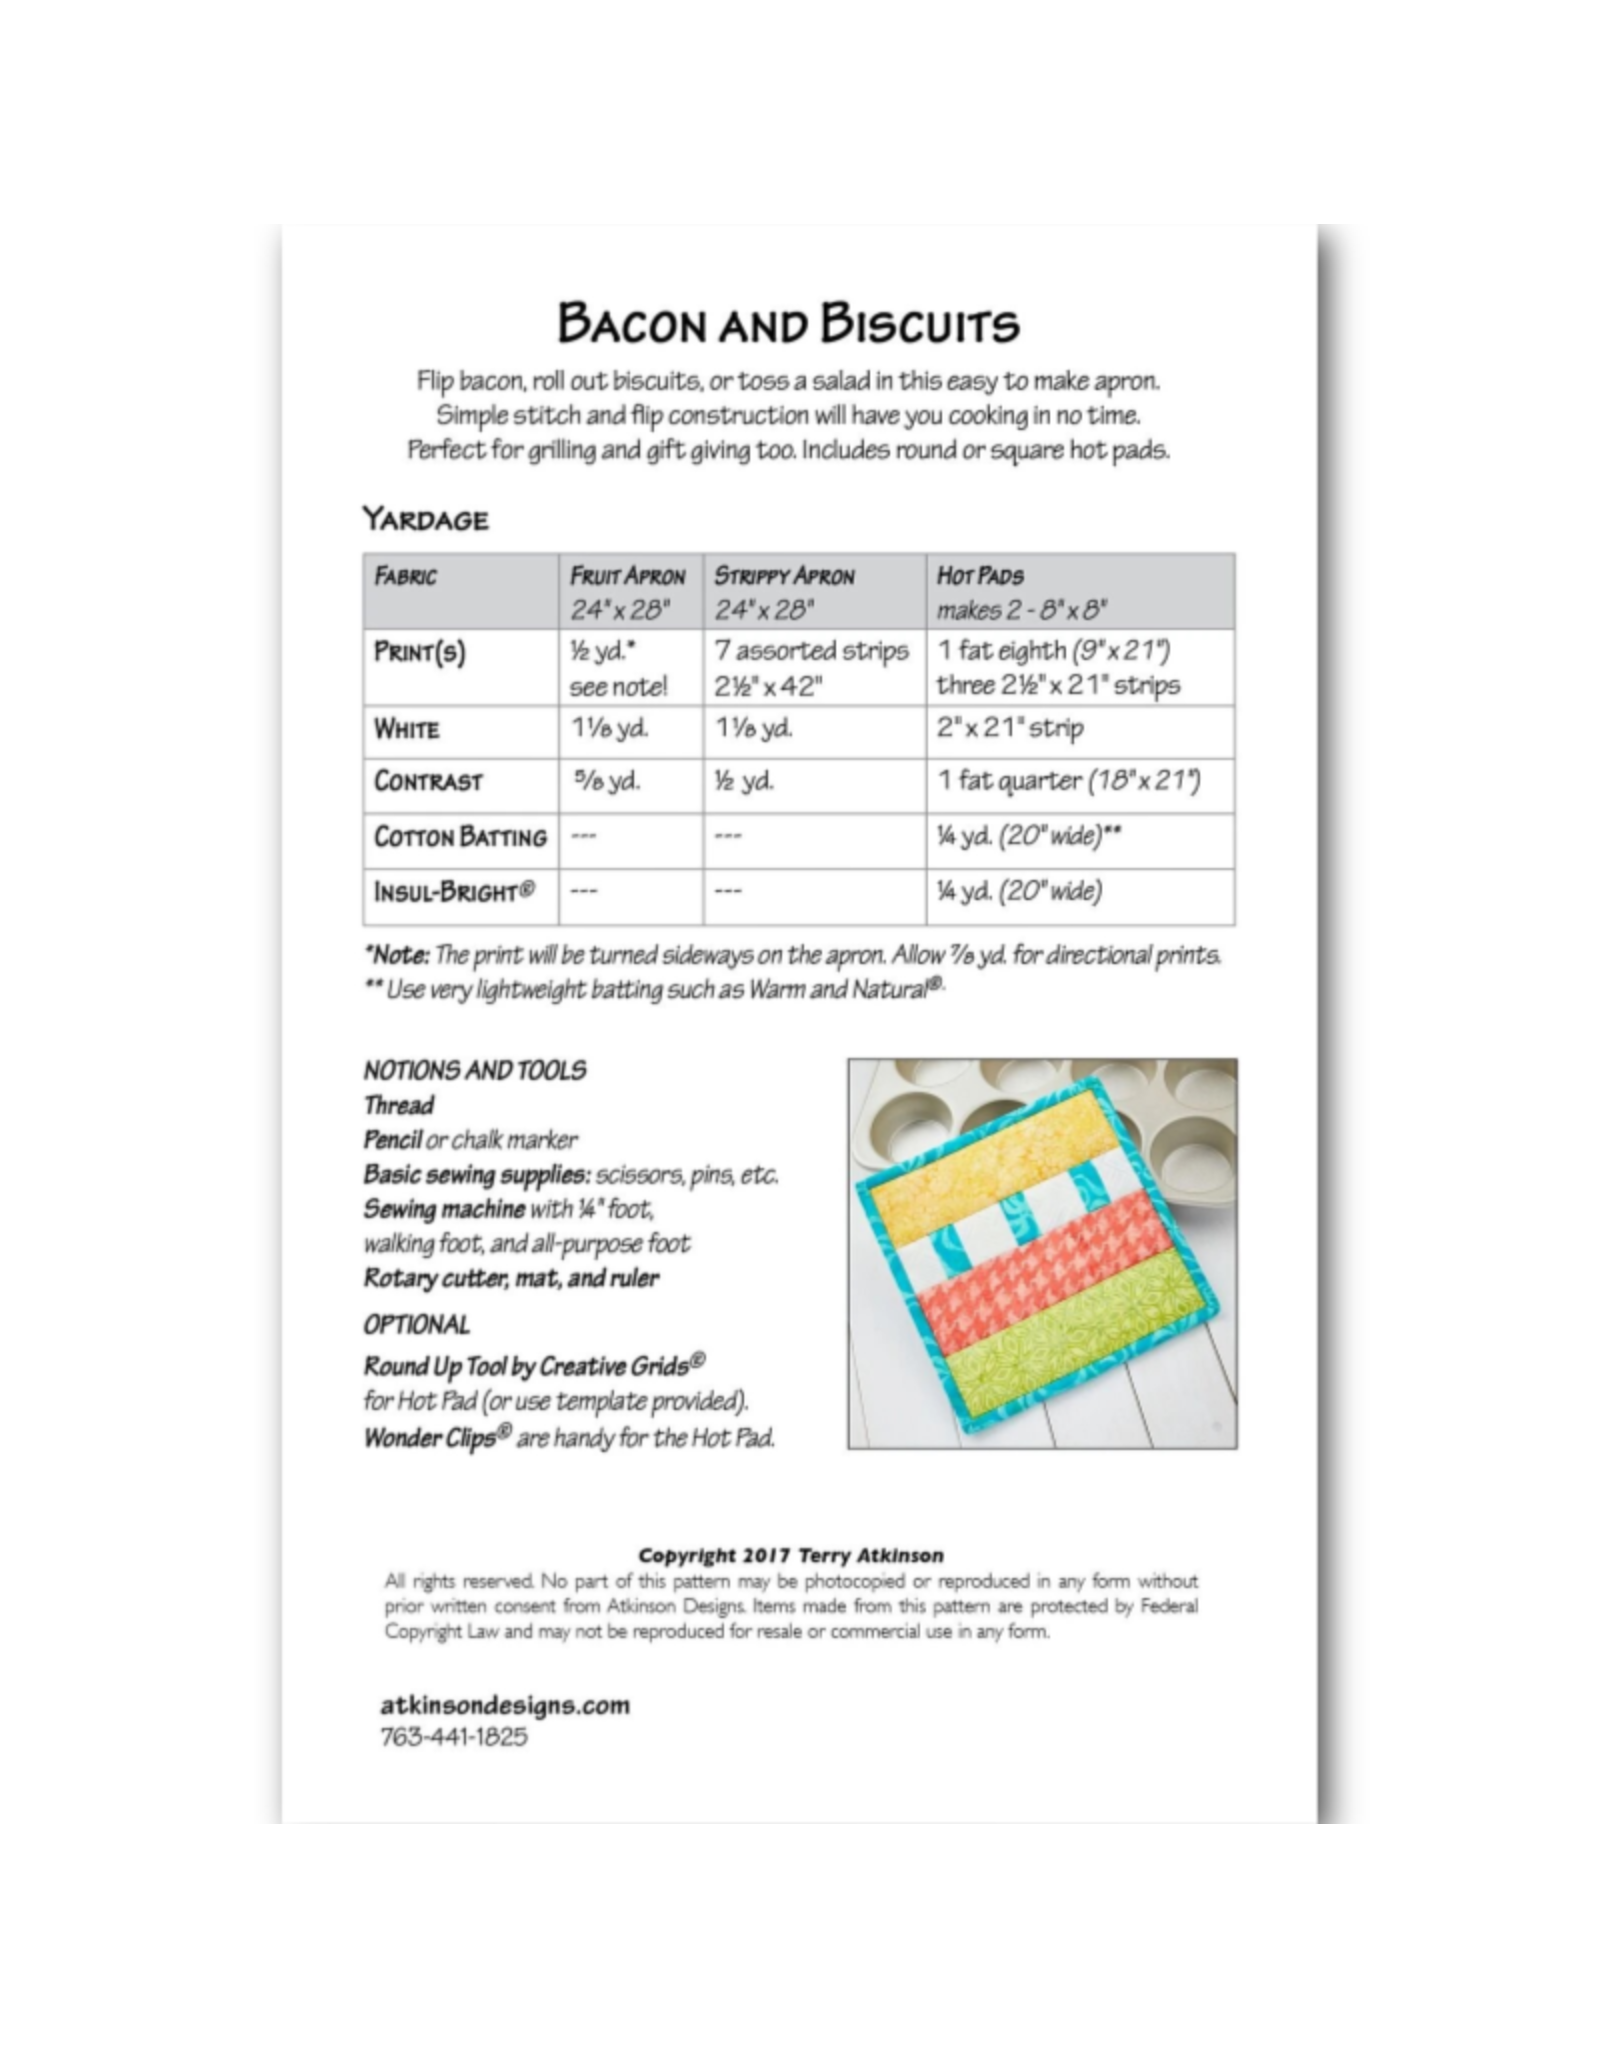 Picking Daisies Bacon and Biscuits Apron Pattern